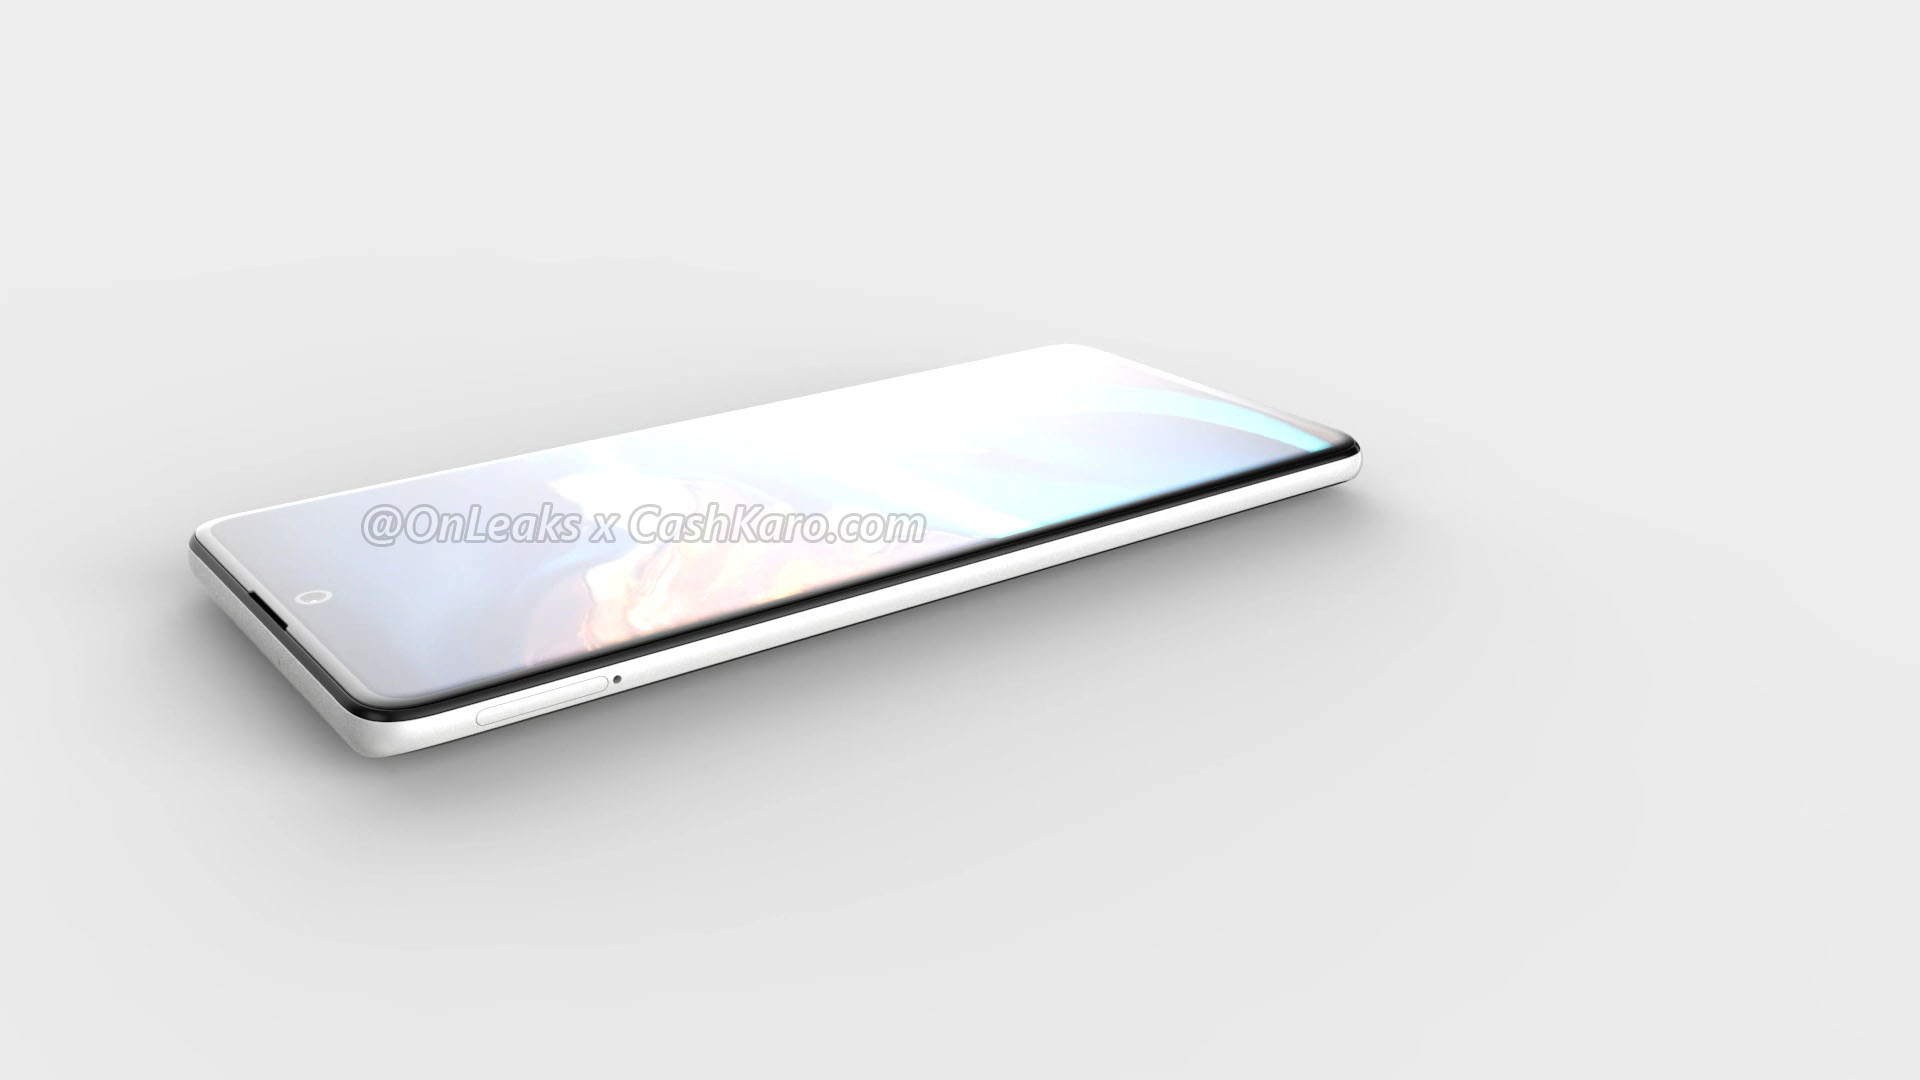 Samsung's upcoming Galaxy A71 smartphone render images and 360 Degree Video leaked online 3